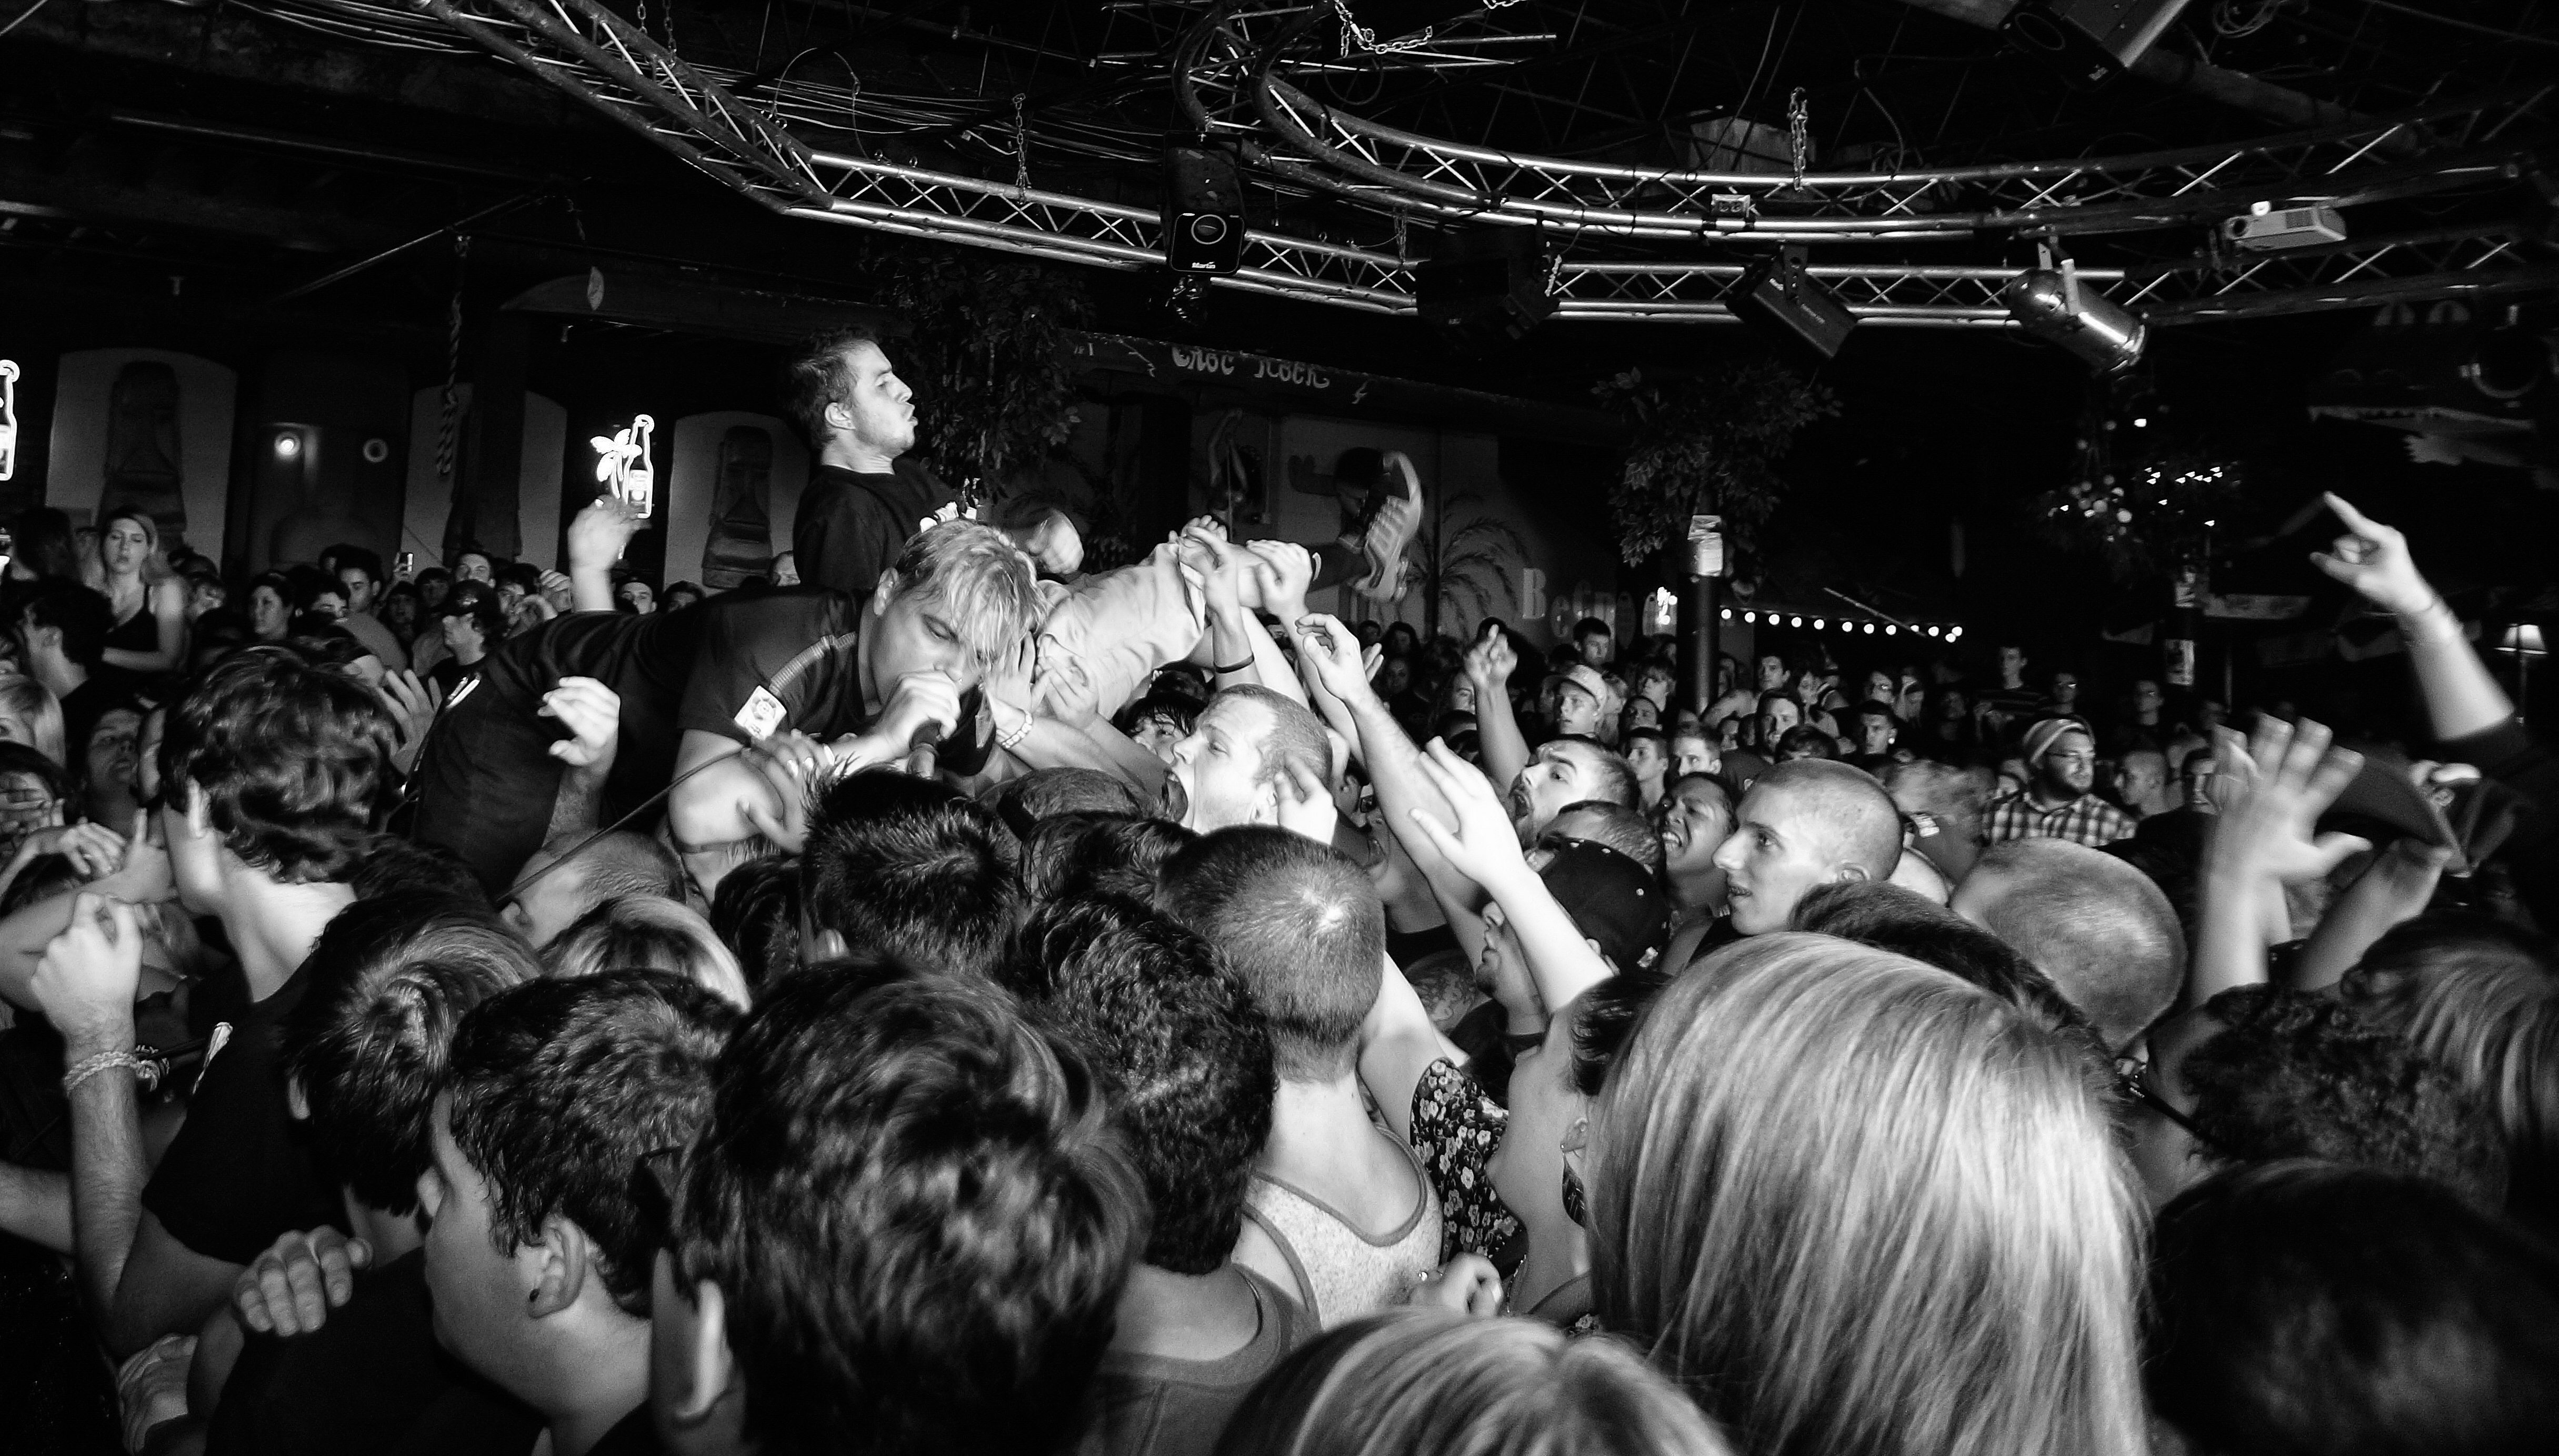 to mosh or not to mosh The dangers of mosh pits are alarming, according to concert safety experts and emergency medical professionals, who told abcnewscom that the most injuries incurred from mosh pits aren't actually by the moshers but by innocent bystanders.